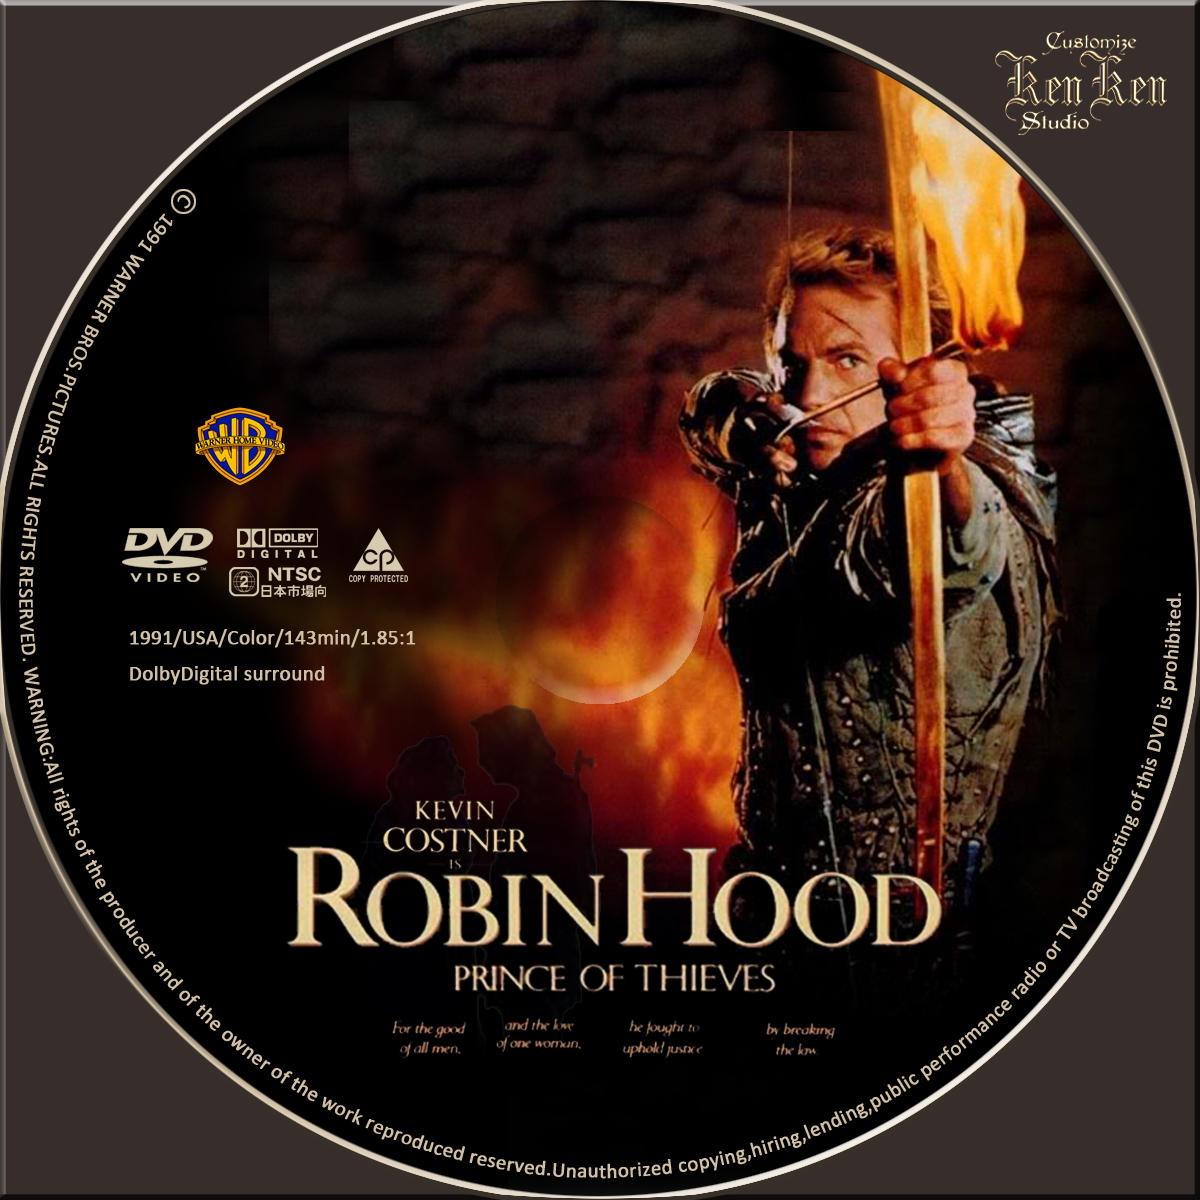 ロビン・フッド (1991) ROBIN HOOD: PRINCE OF THIEVES